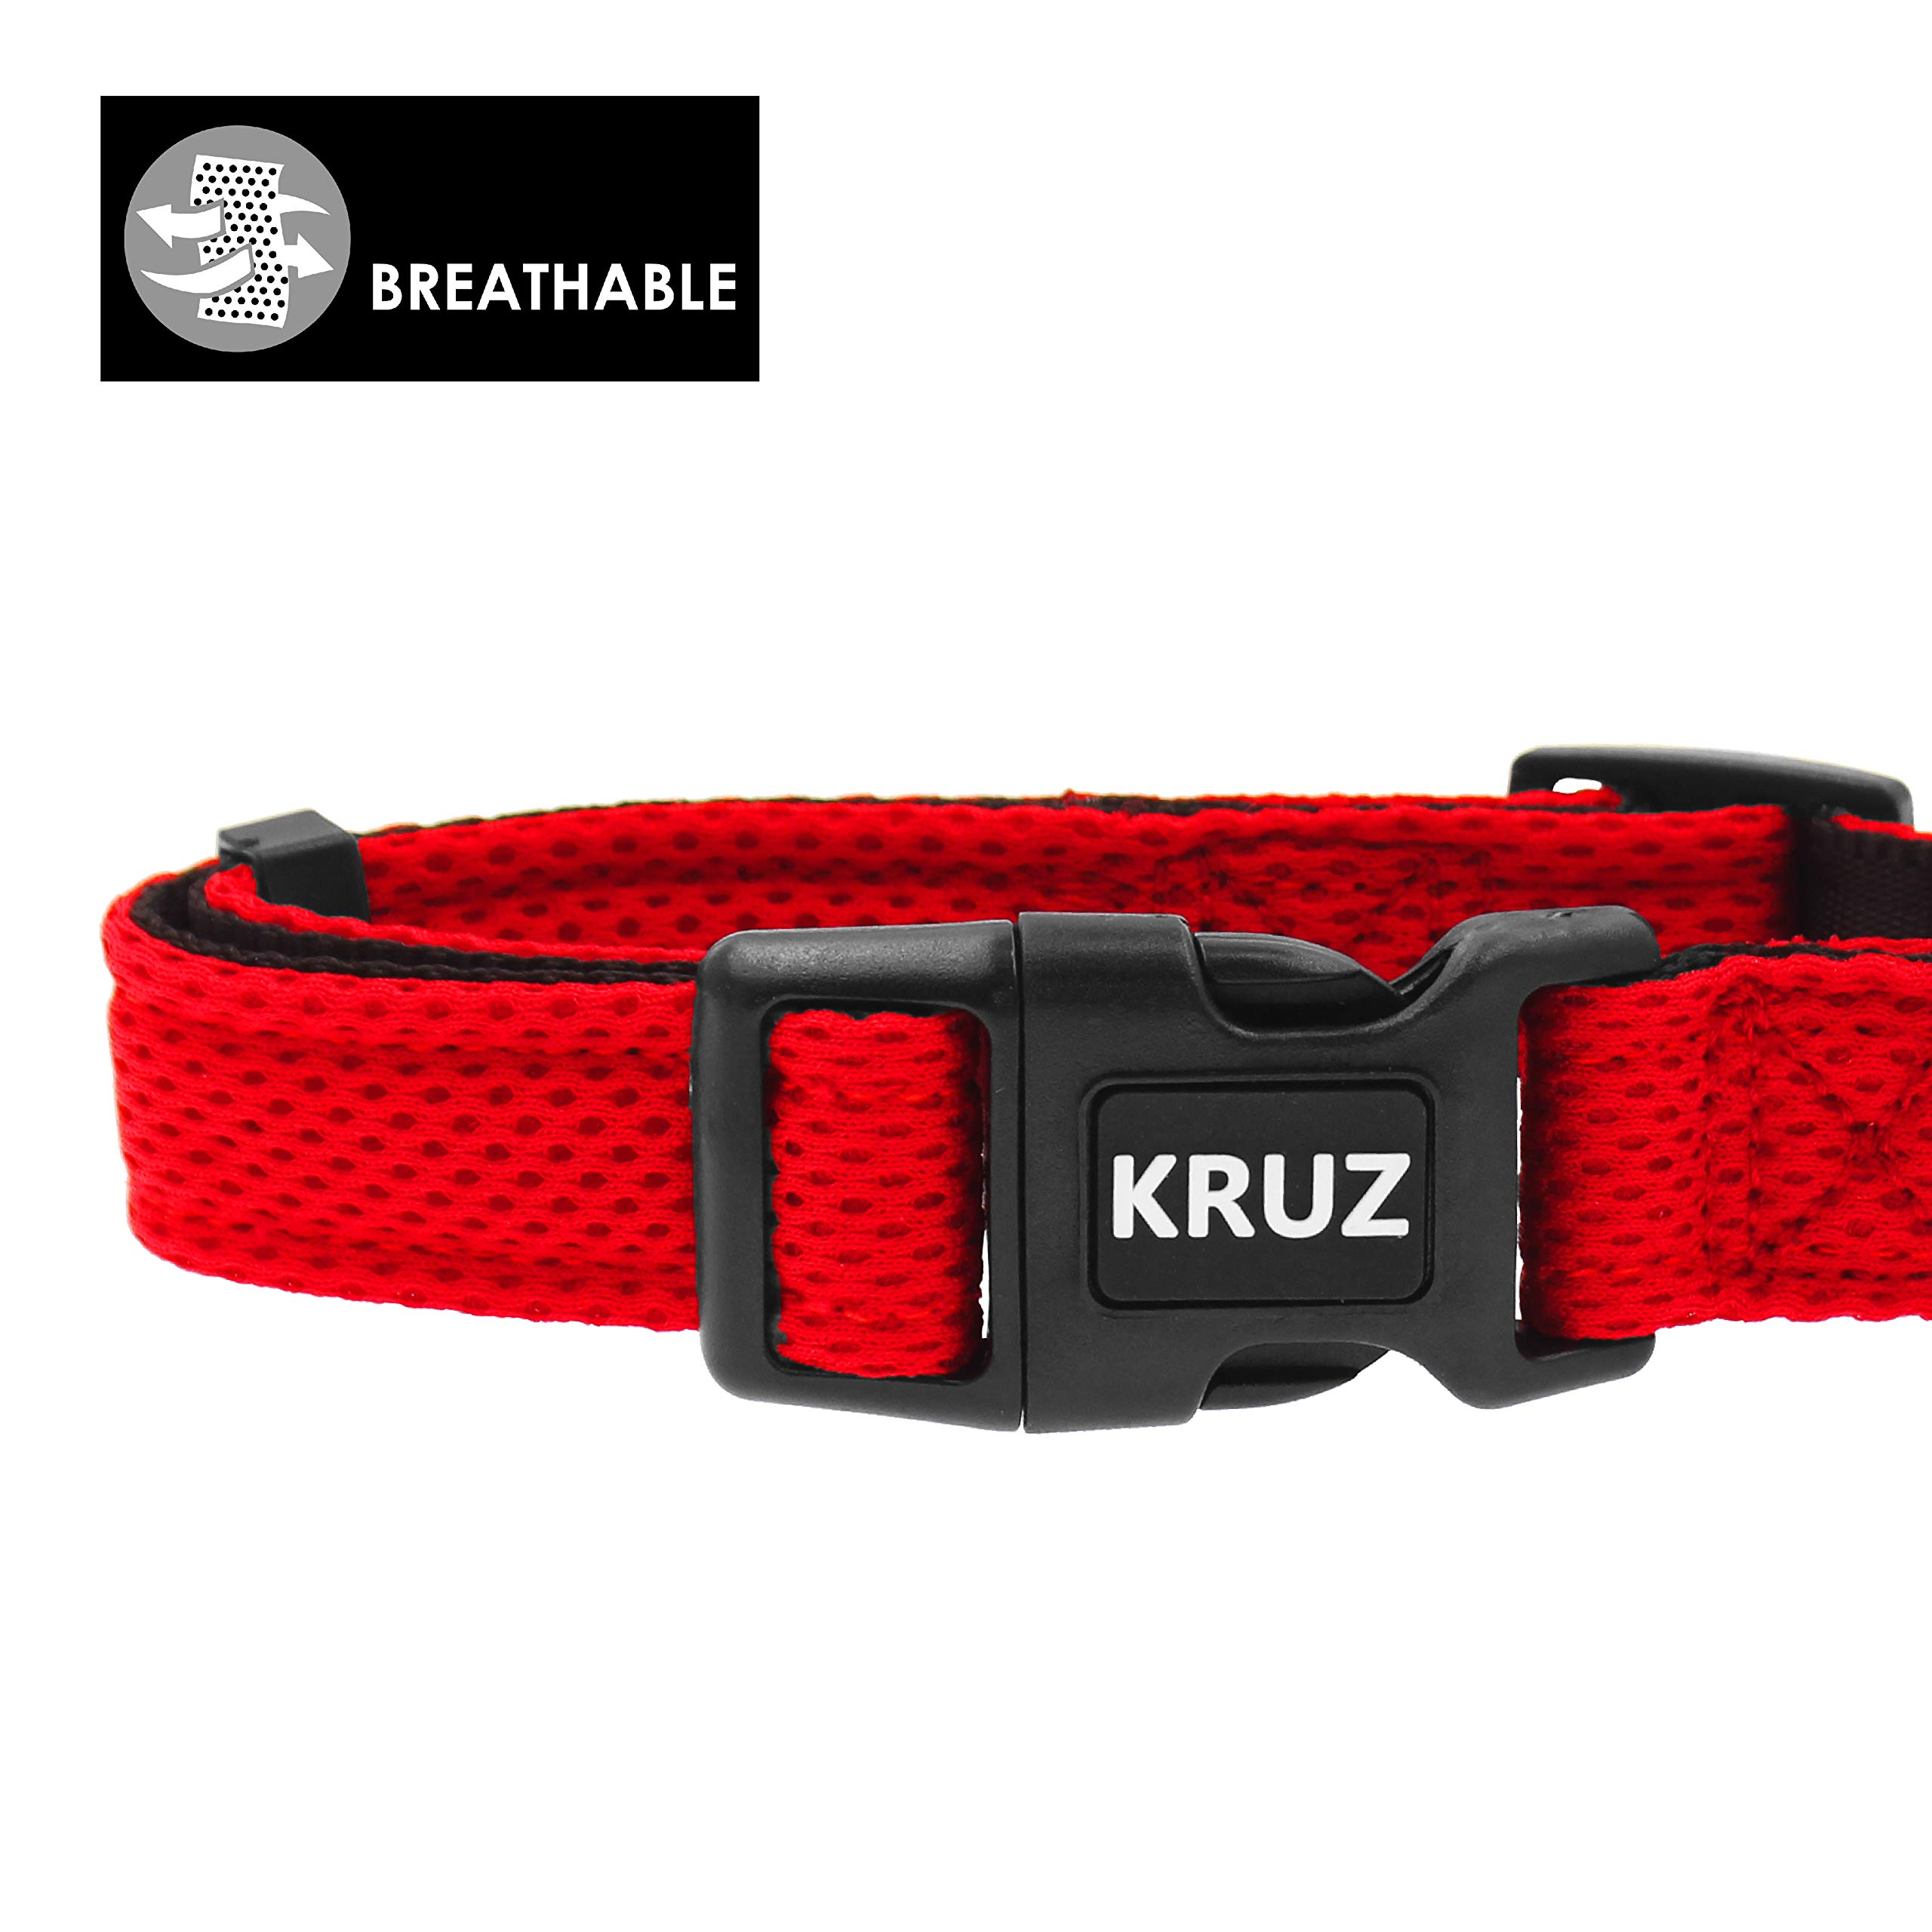 KRUZ PET KZA102-14L Breathable Mesh Dog Collar, Soft and Strong, Large